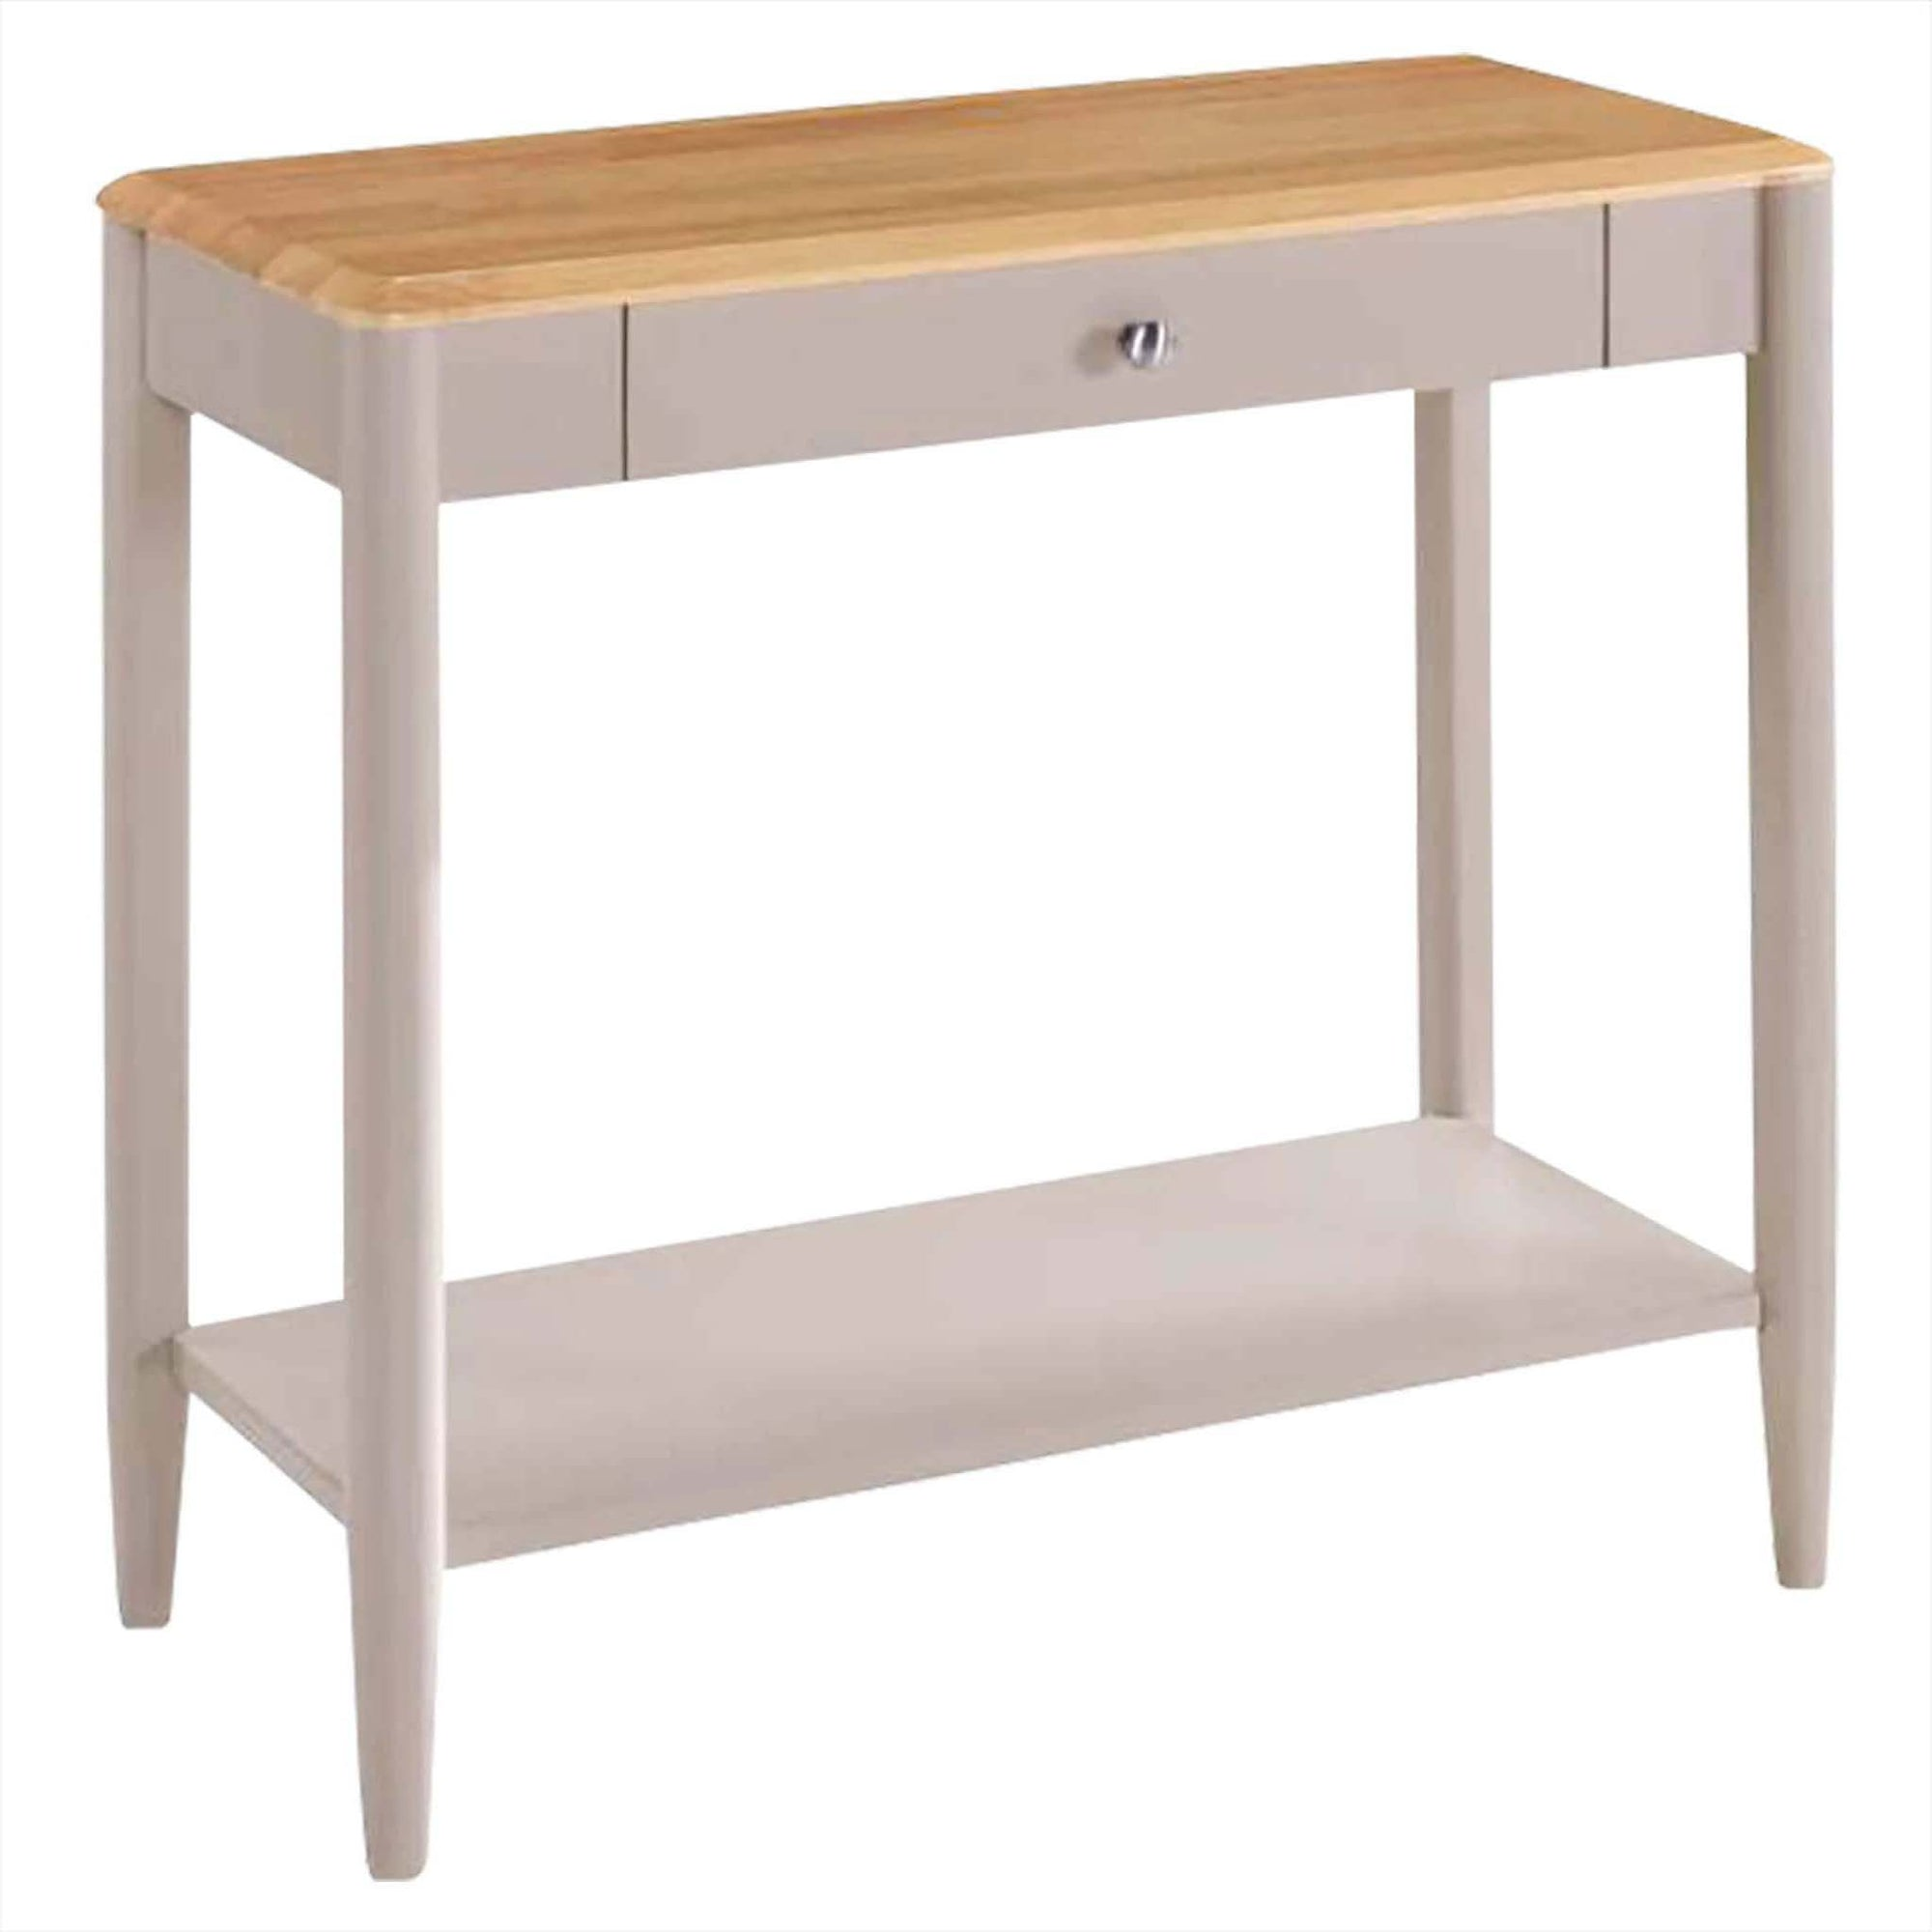 Altona Console Hall Table by Roseland Furniture